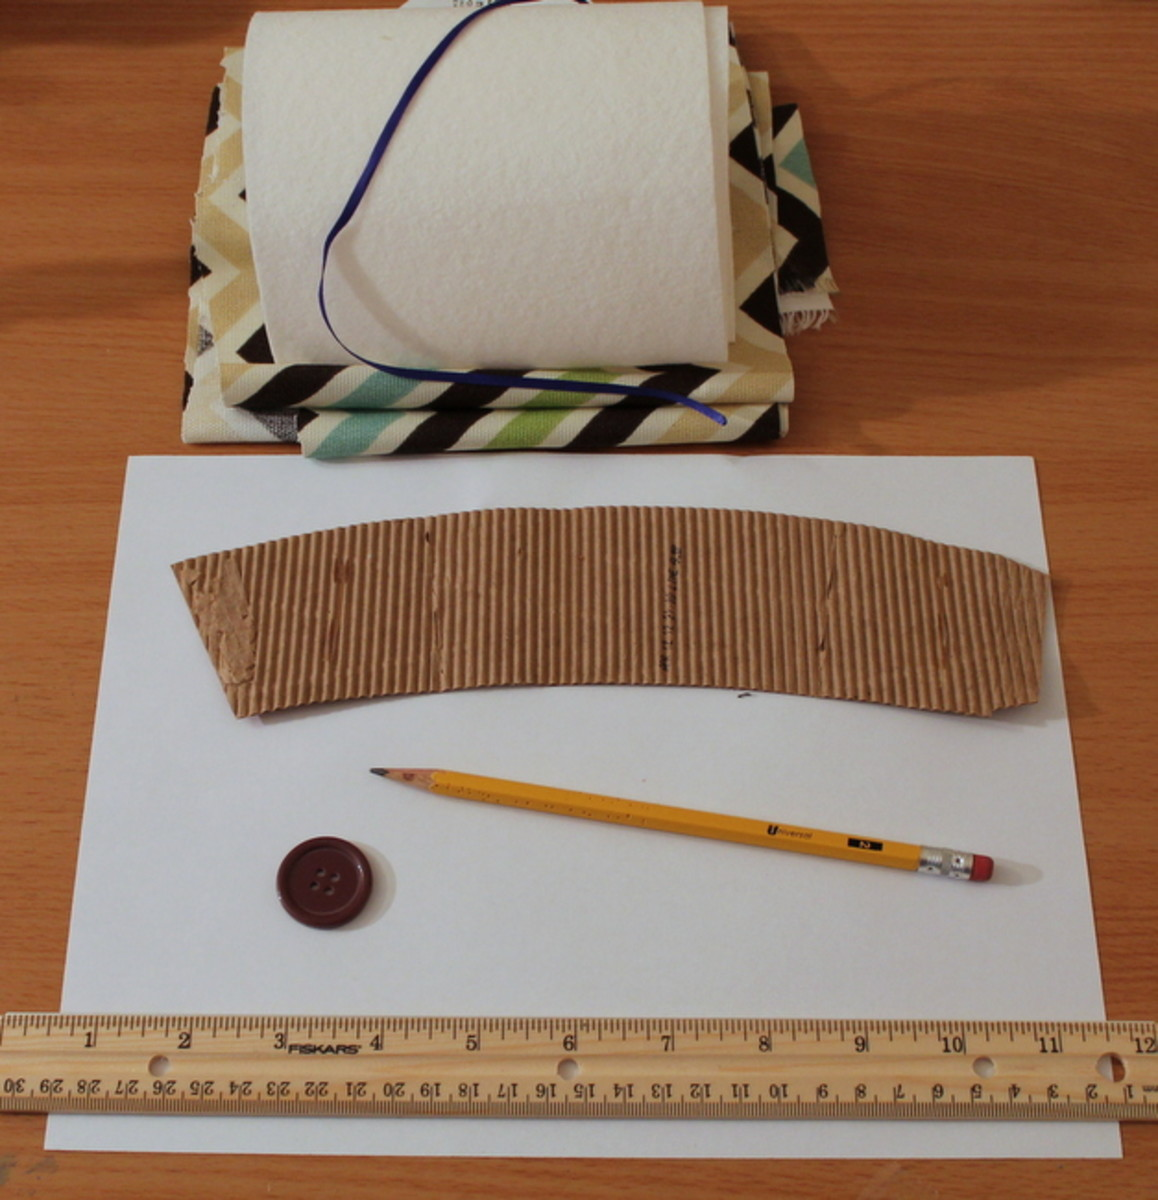 Supplies for a reusable coffee sleeve